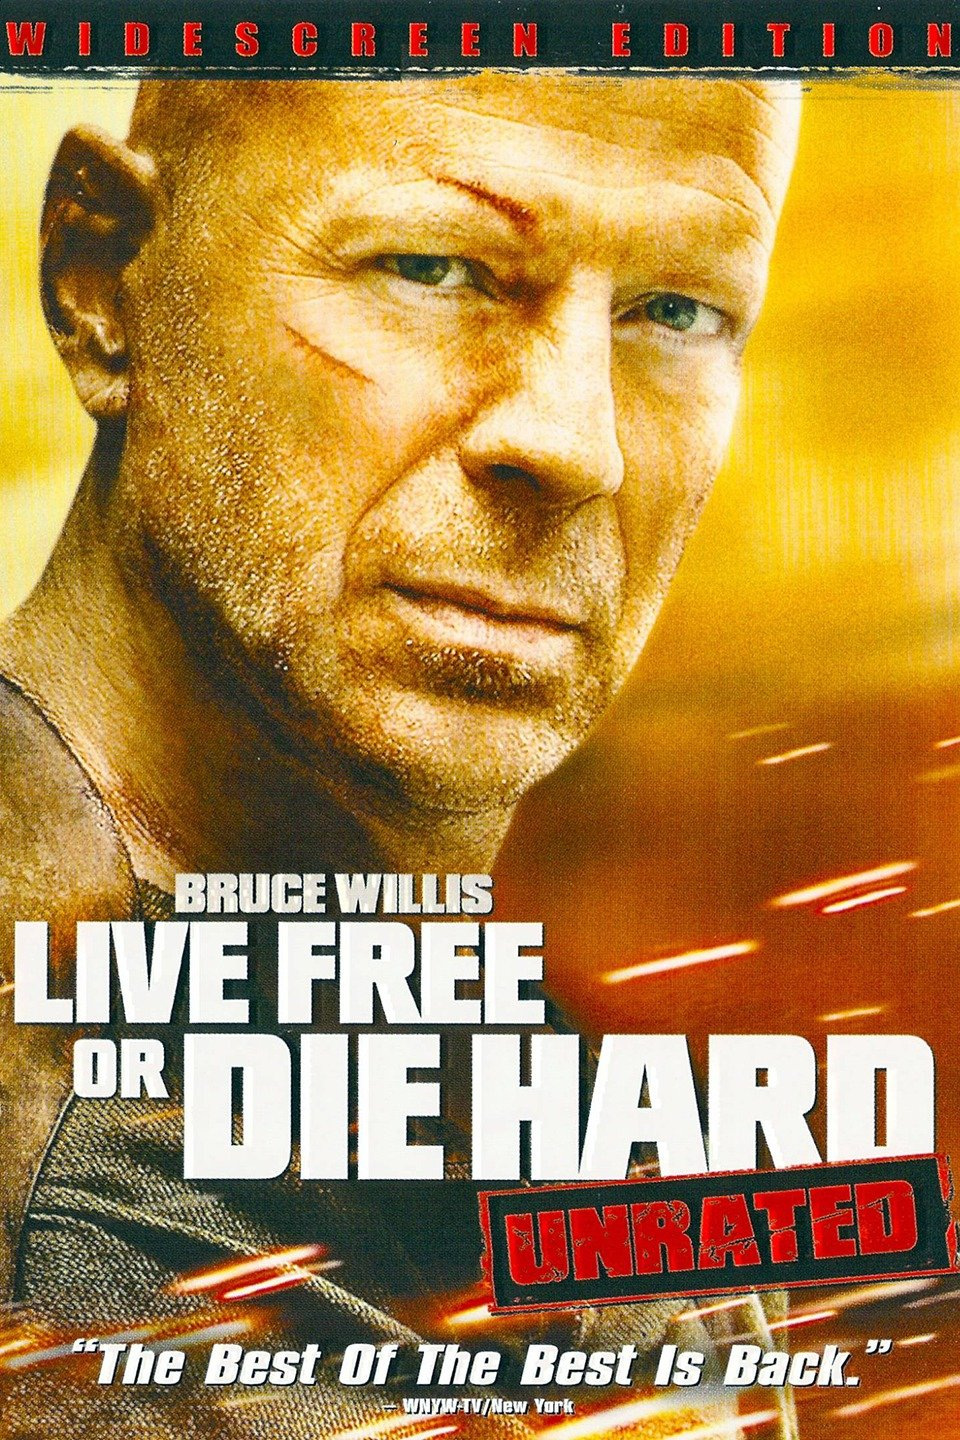 Live Free or Die Hard 2007 Full Movie Download BluRay 480p 500MB And 720p 998MB High Speed Google Drive Link